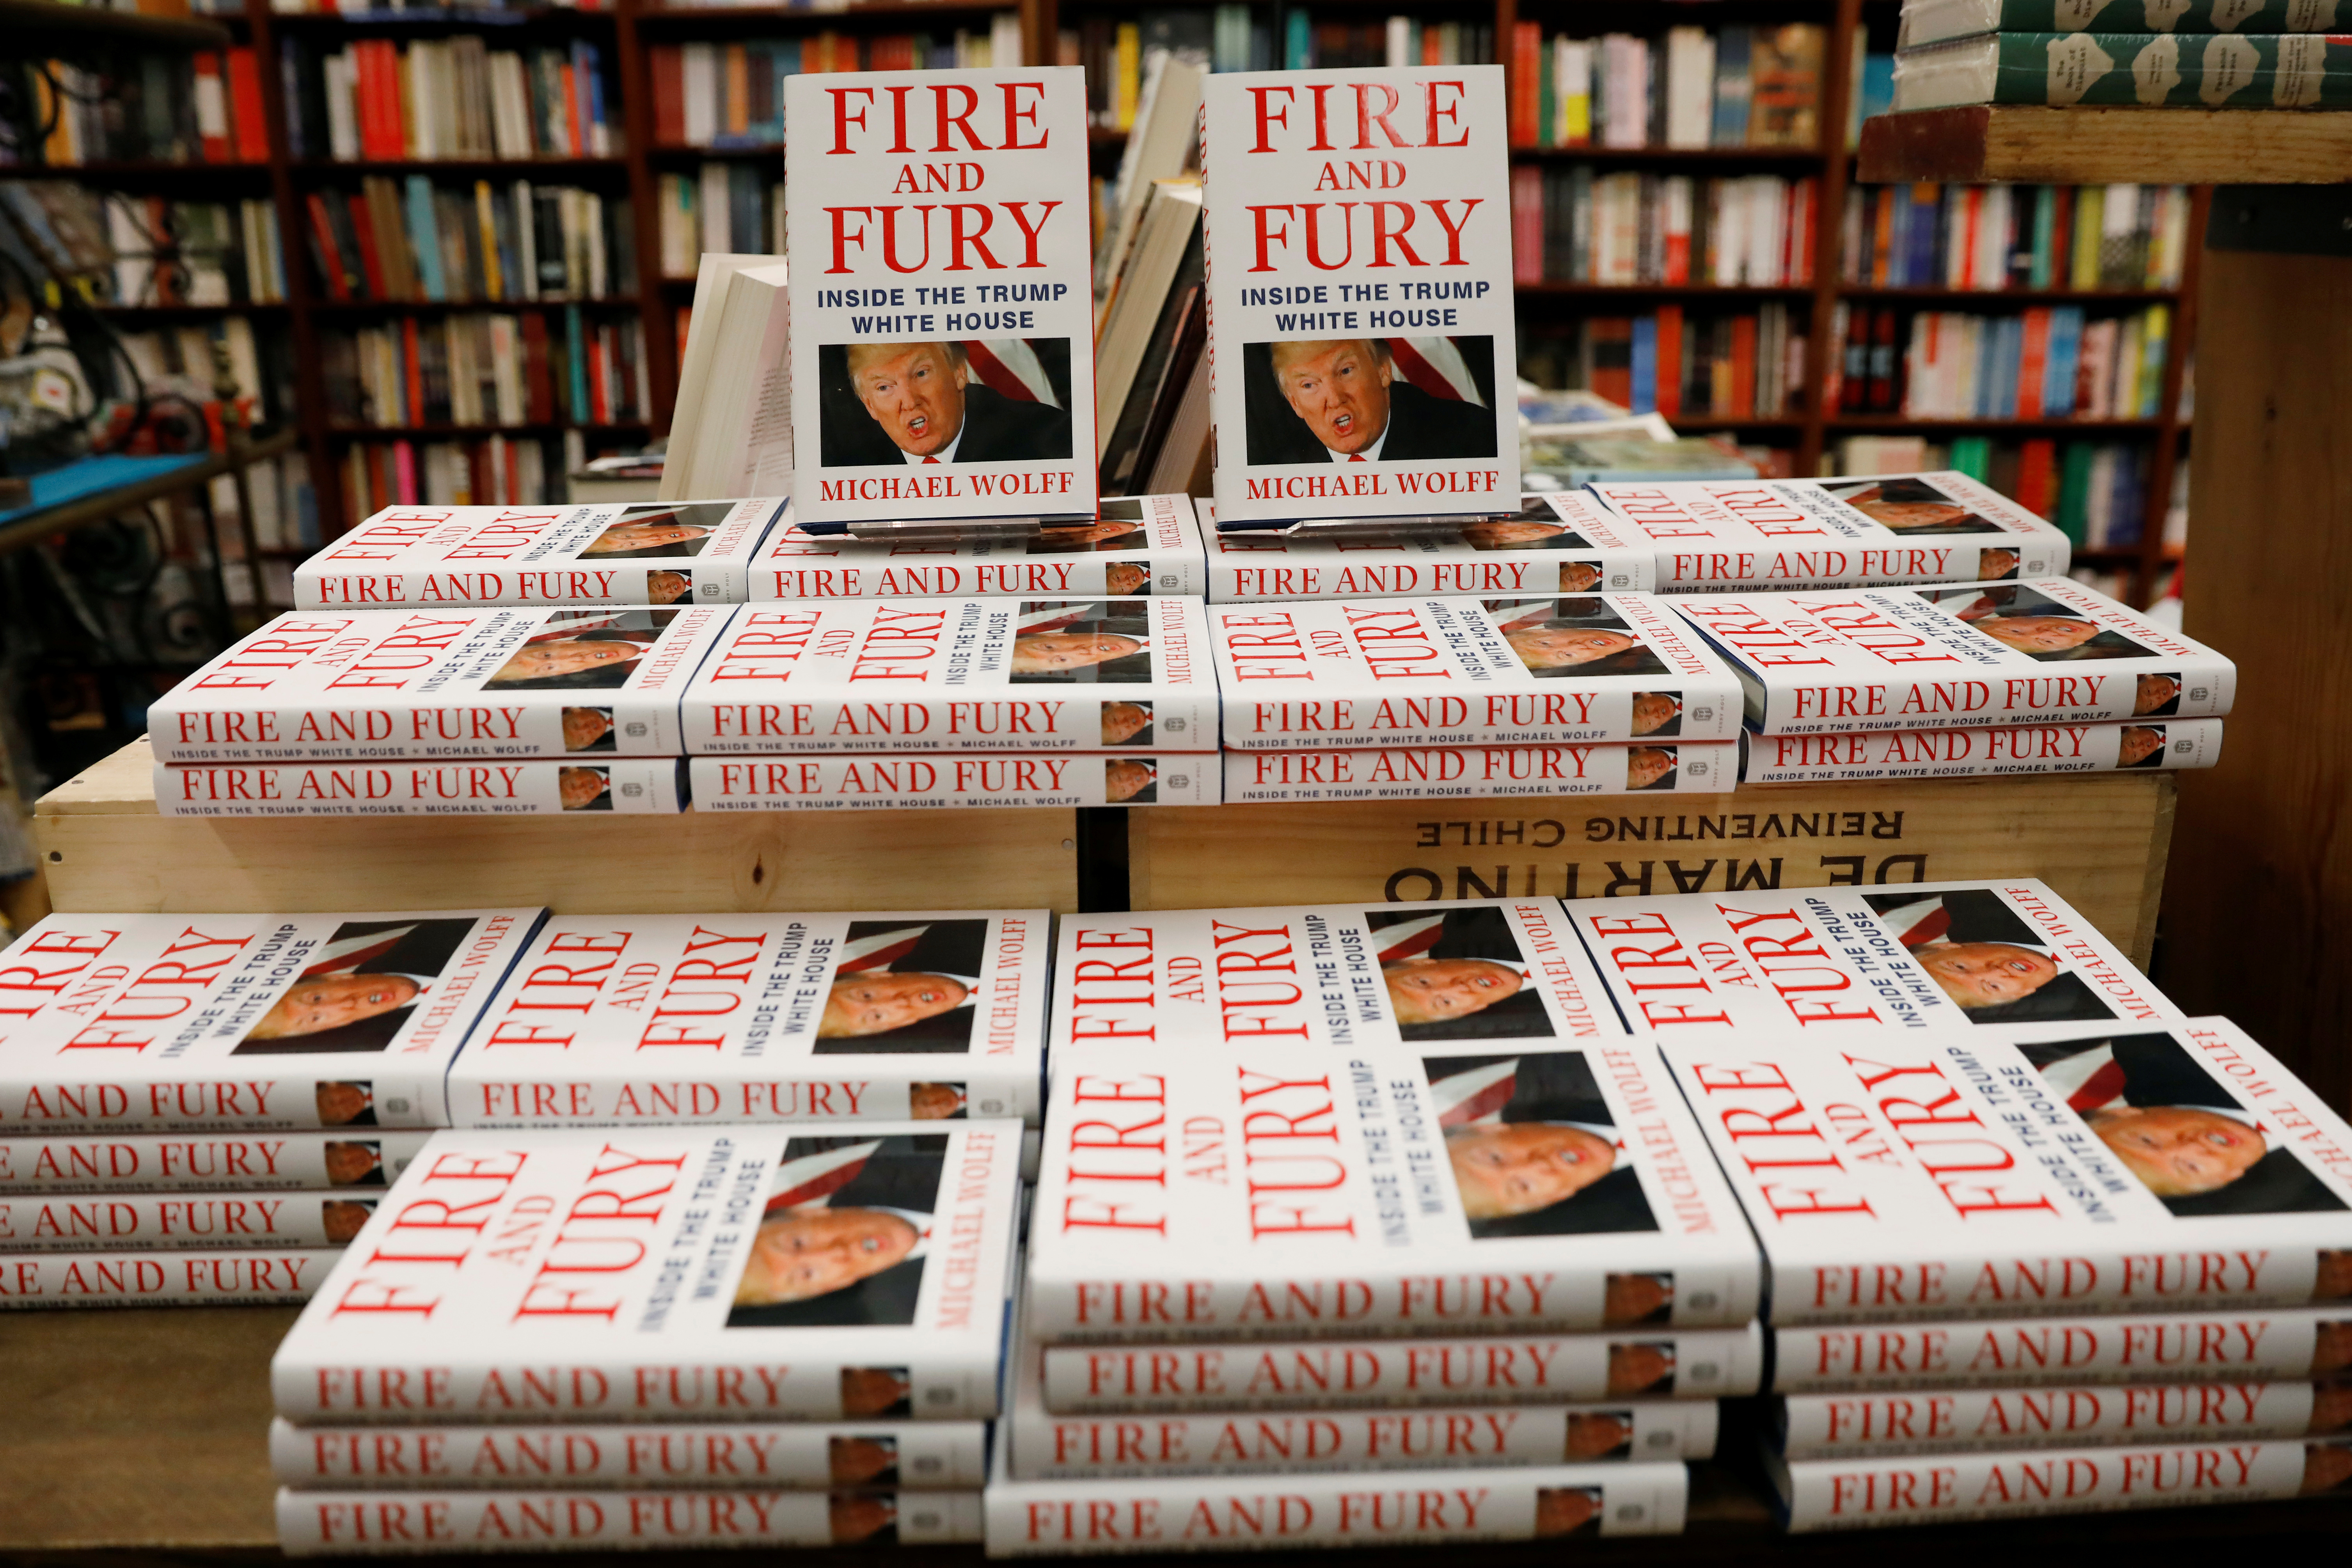 """Copies of the book """"Fire and Fury: Inside the Trump White House"""" by author Michael Wolff are seen at the Book Culture bookstore in New York, Jan. 5, 2018."""